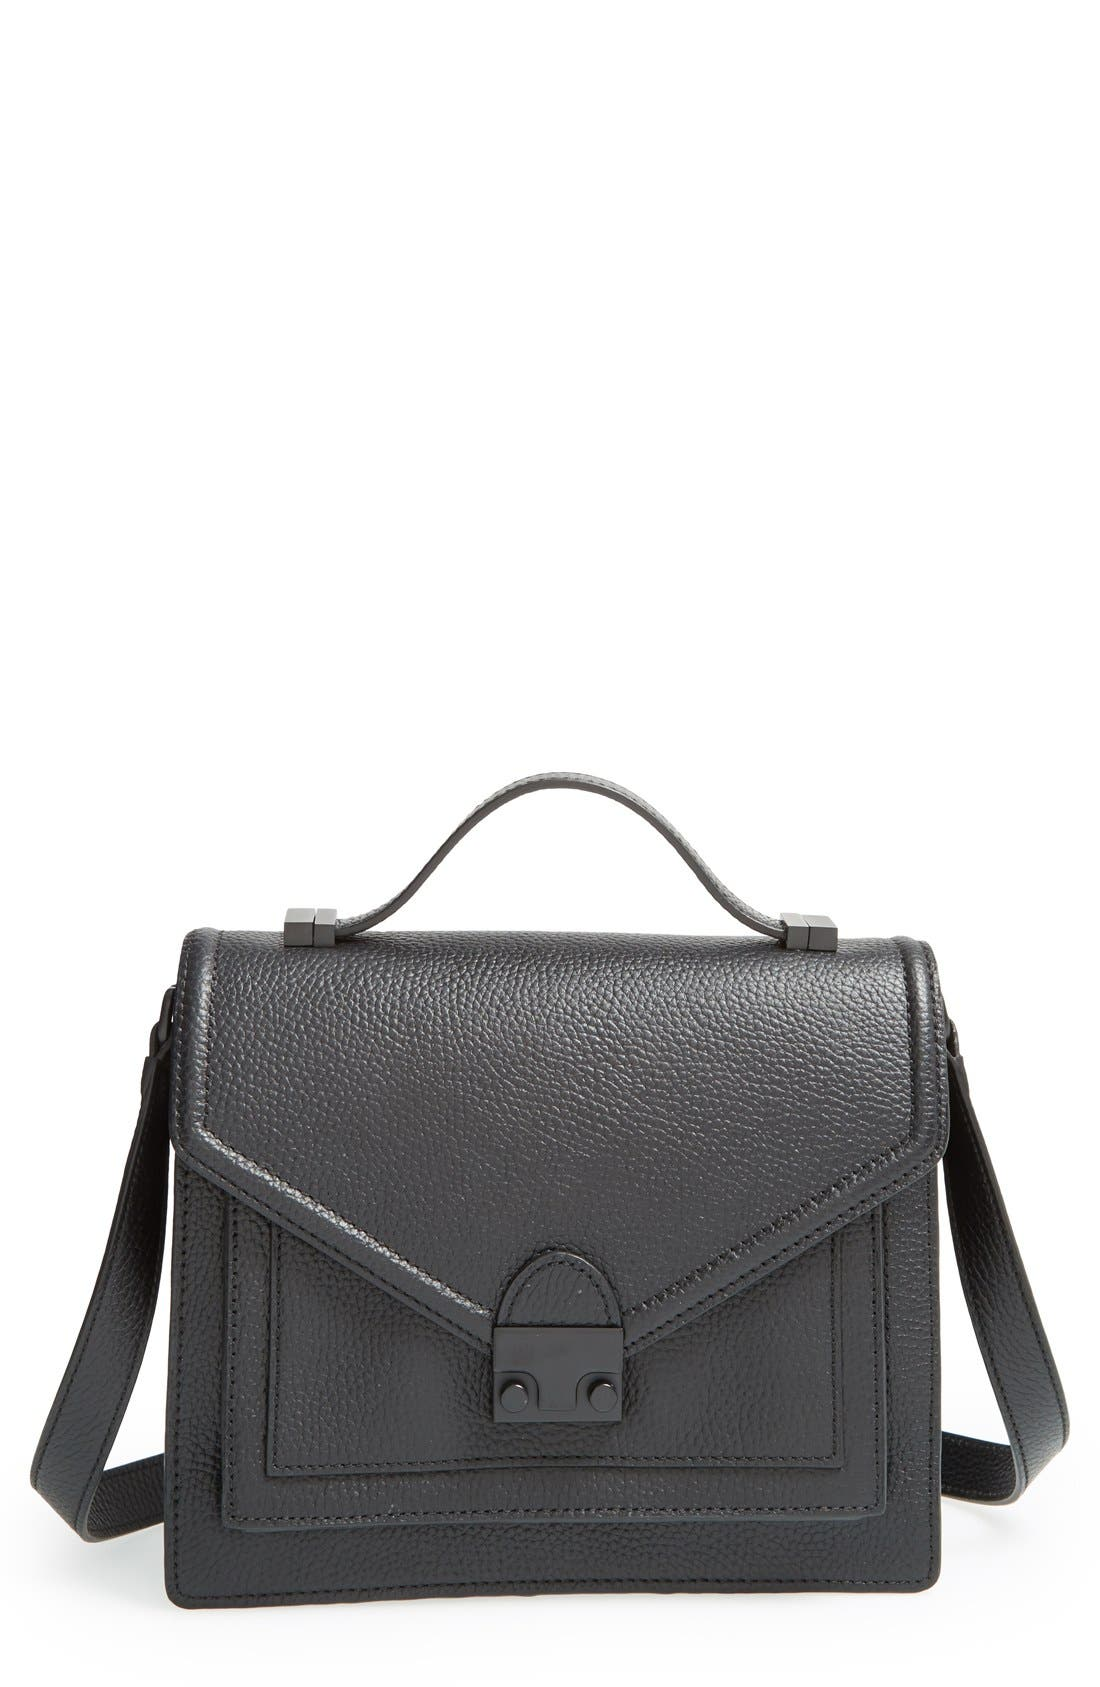 Alternate Image 1 Selected - Loeffler Randall 'Medium Rider' Leather Top Handle Satchel